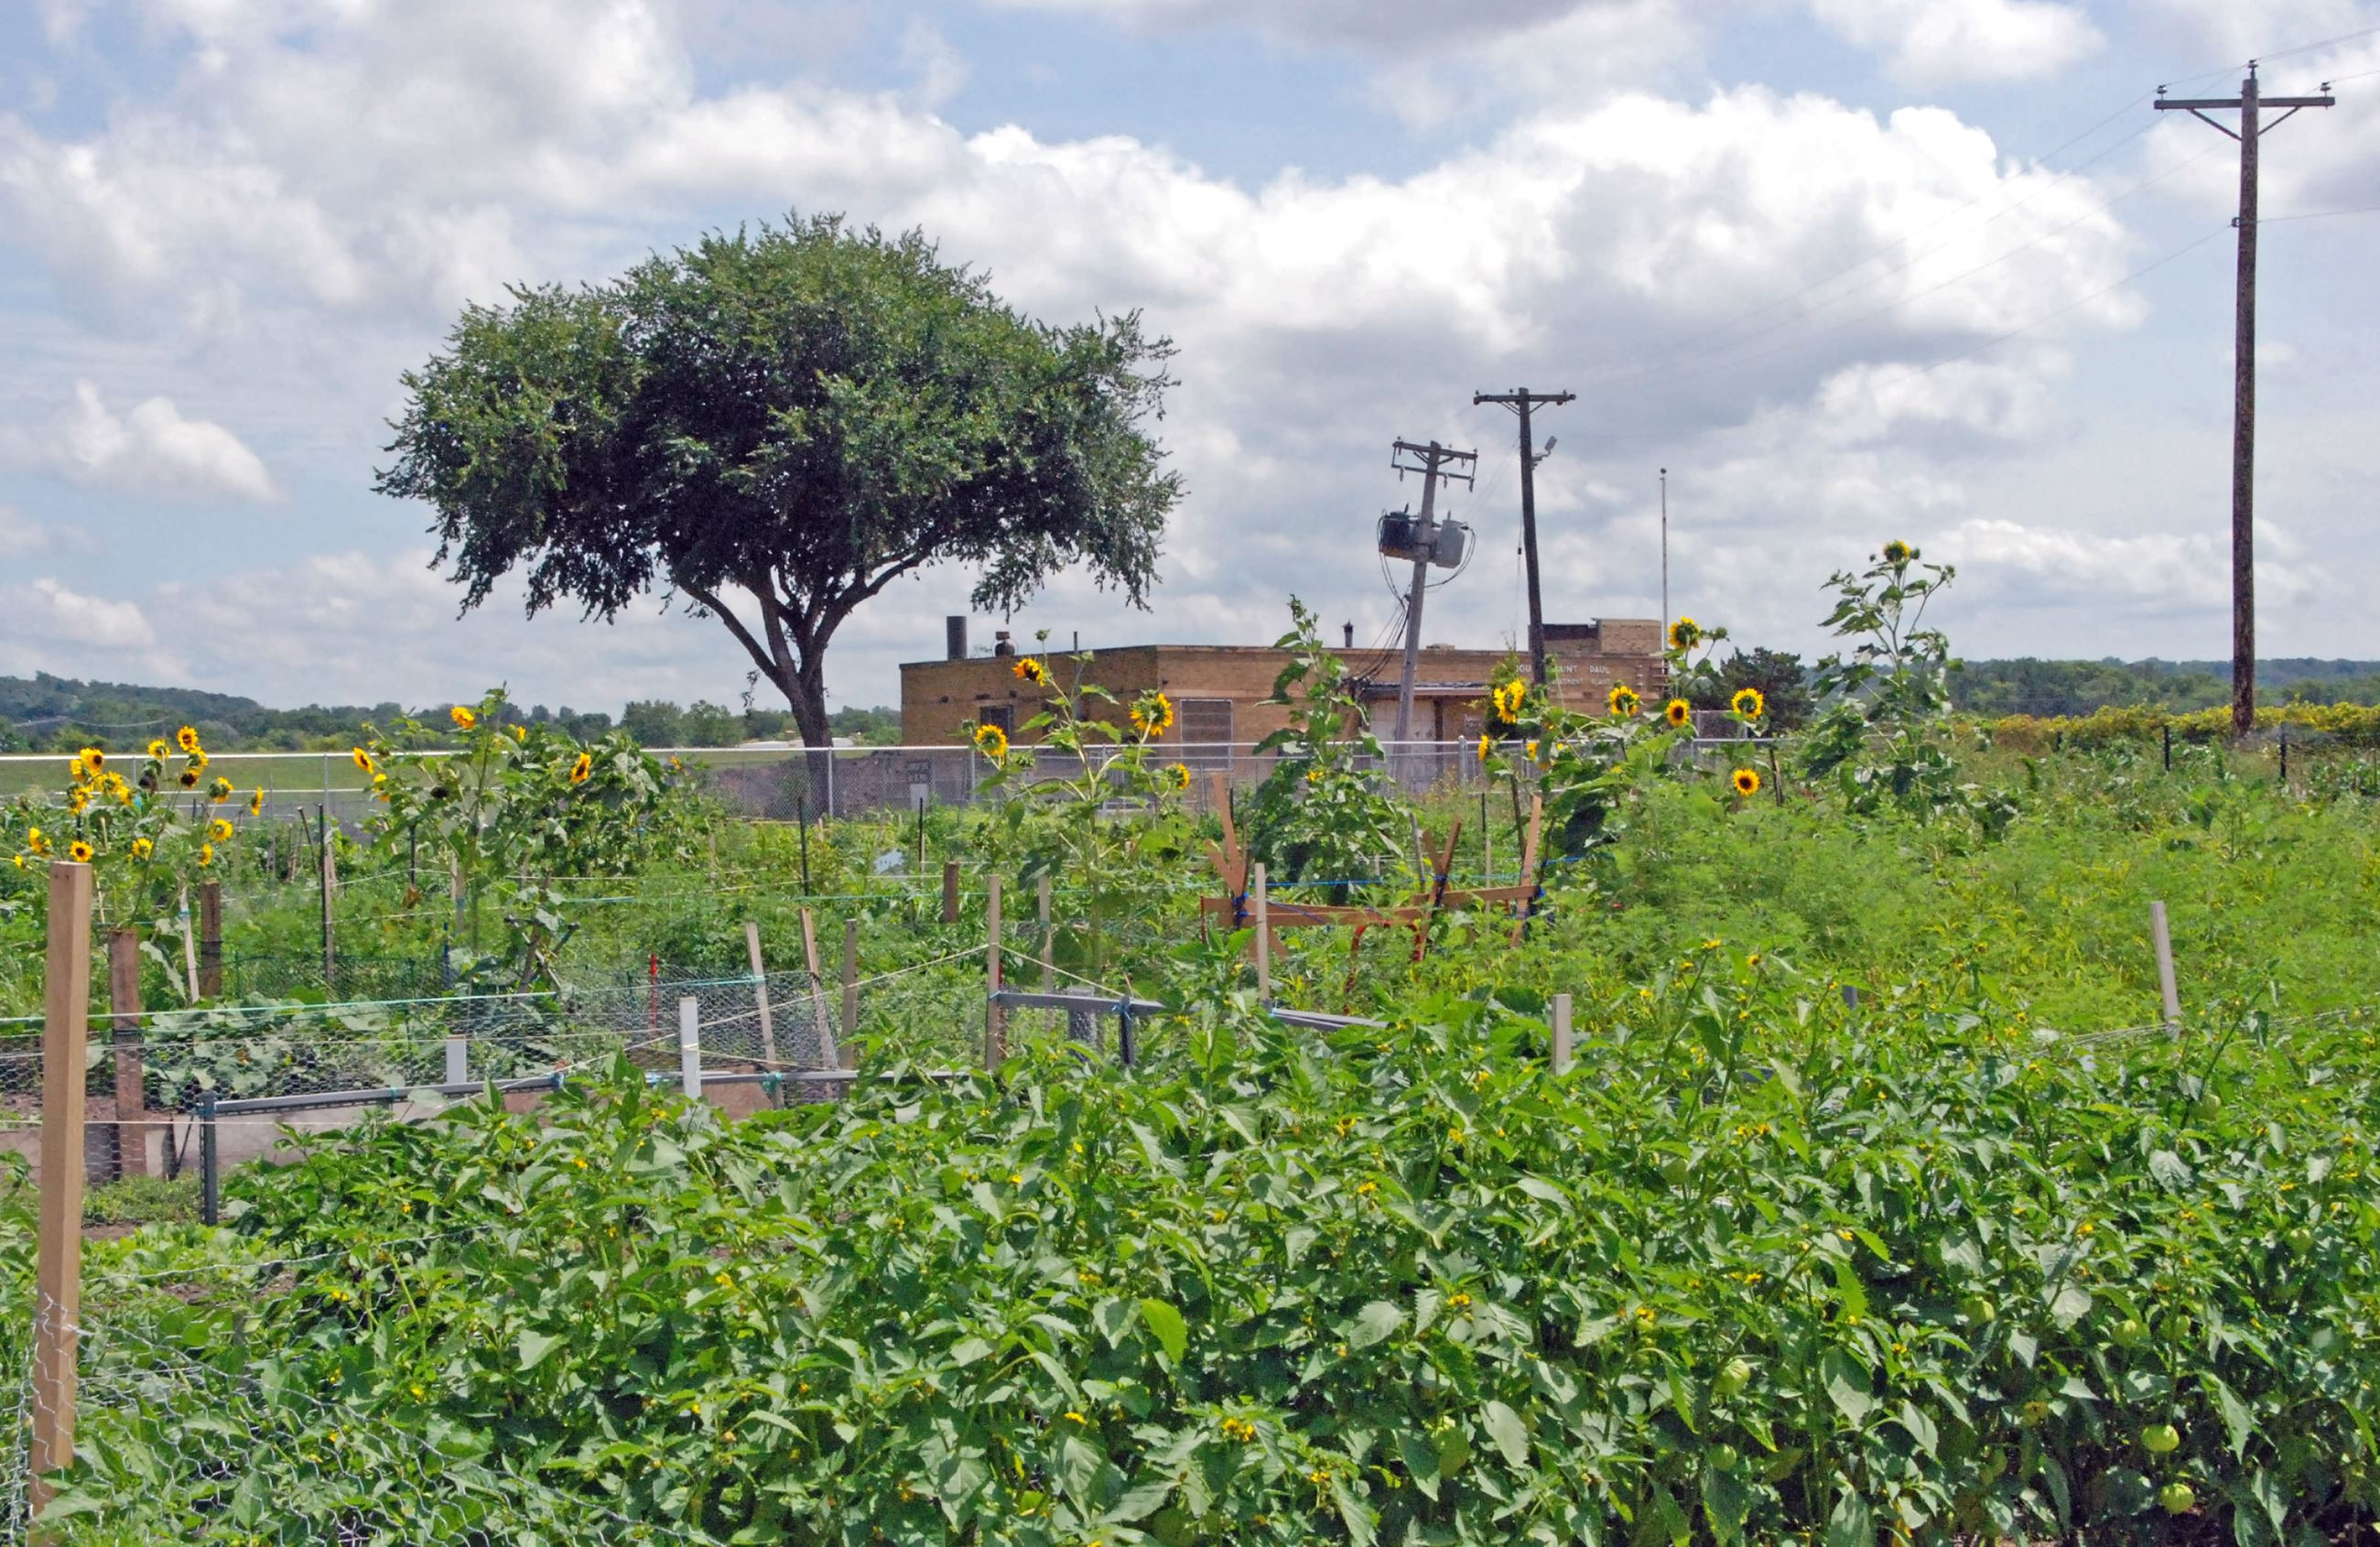 Community Garden with sunflowers and tomato plants.